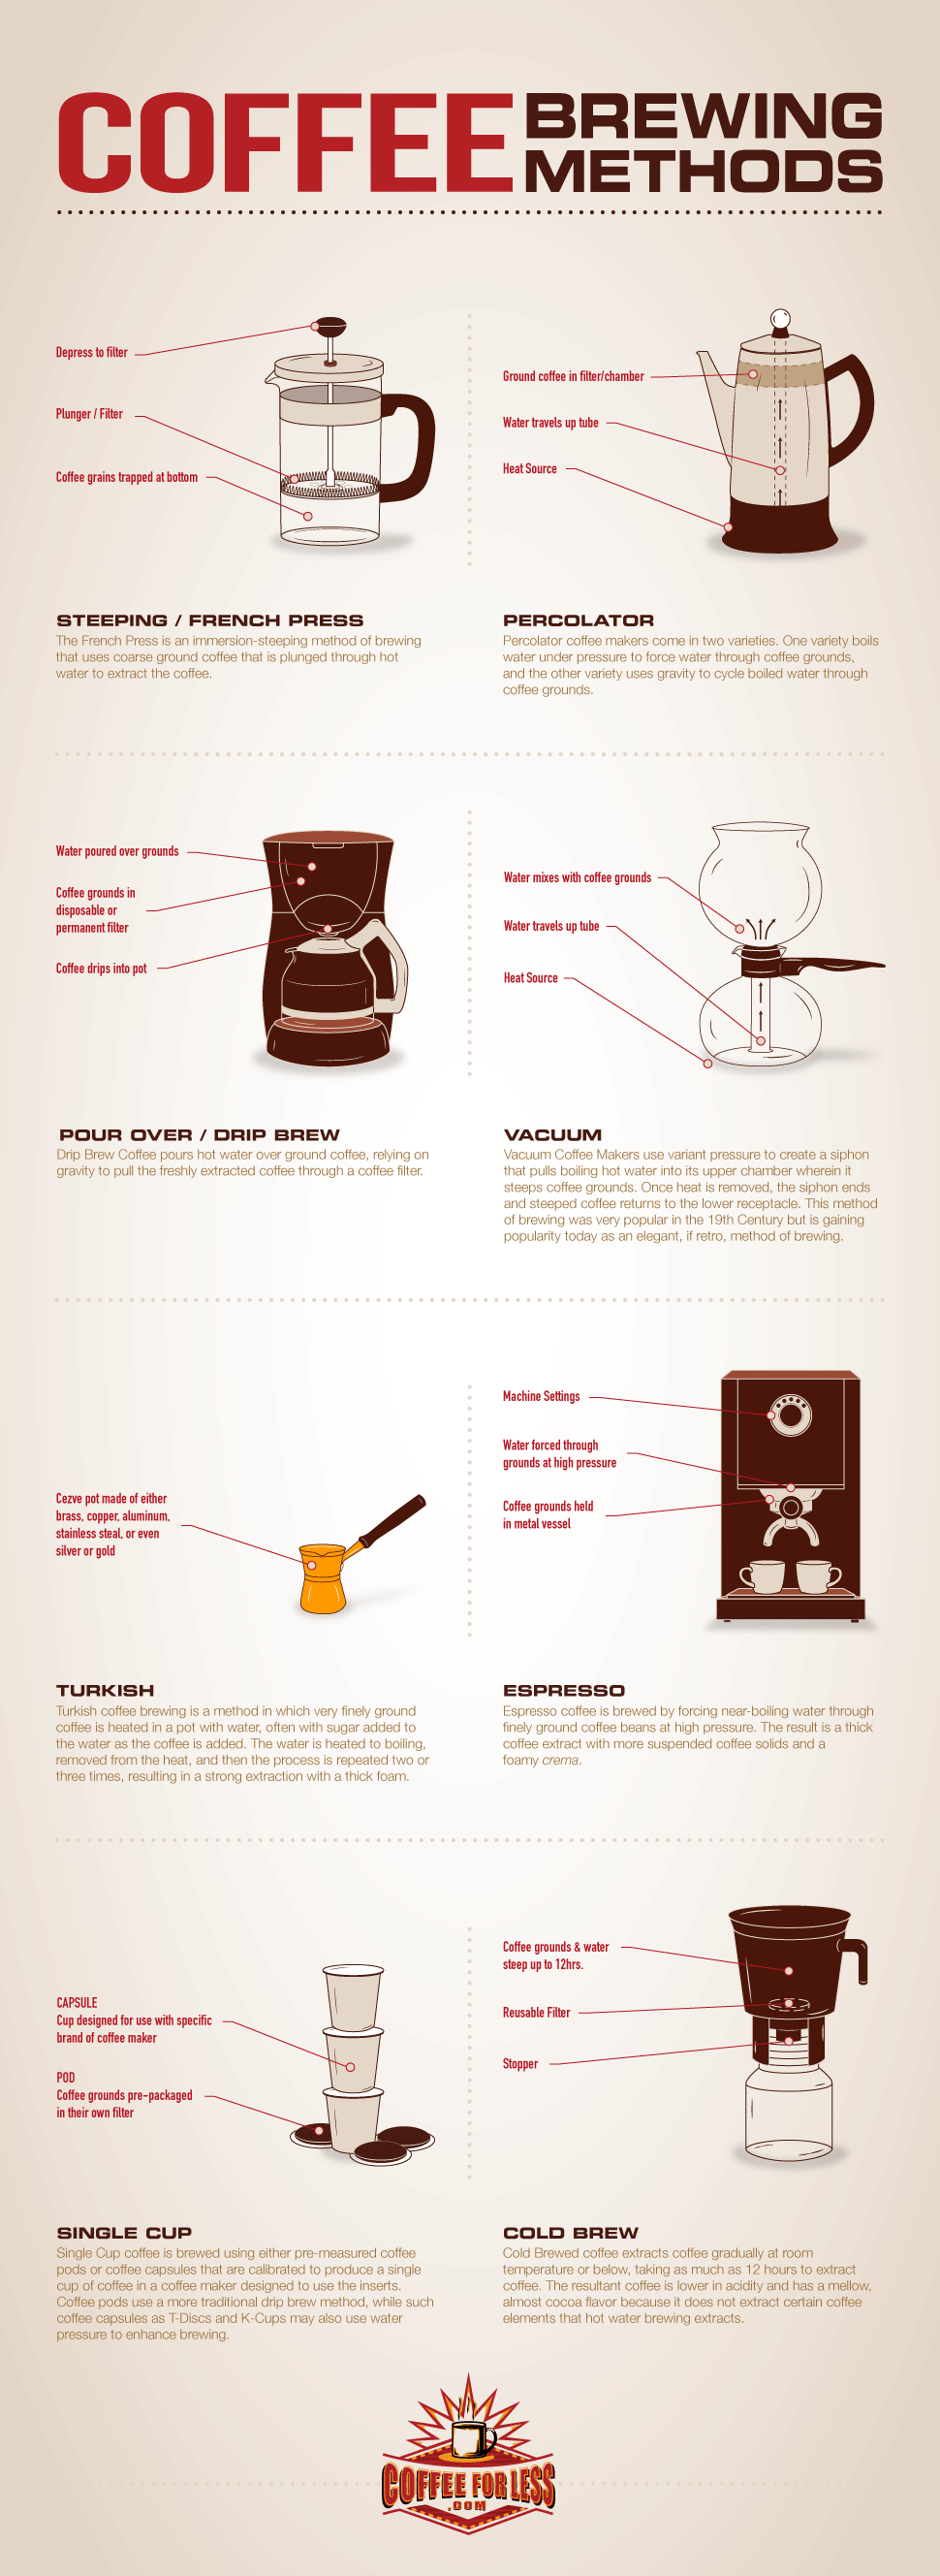 Various methods for brewing coffee revealed in this overview infographic.